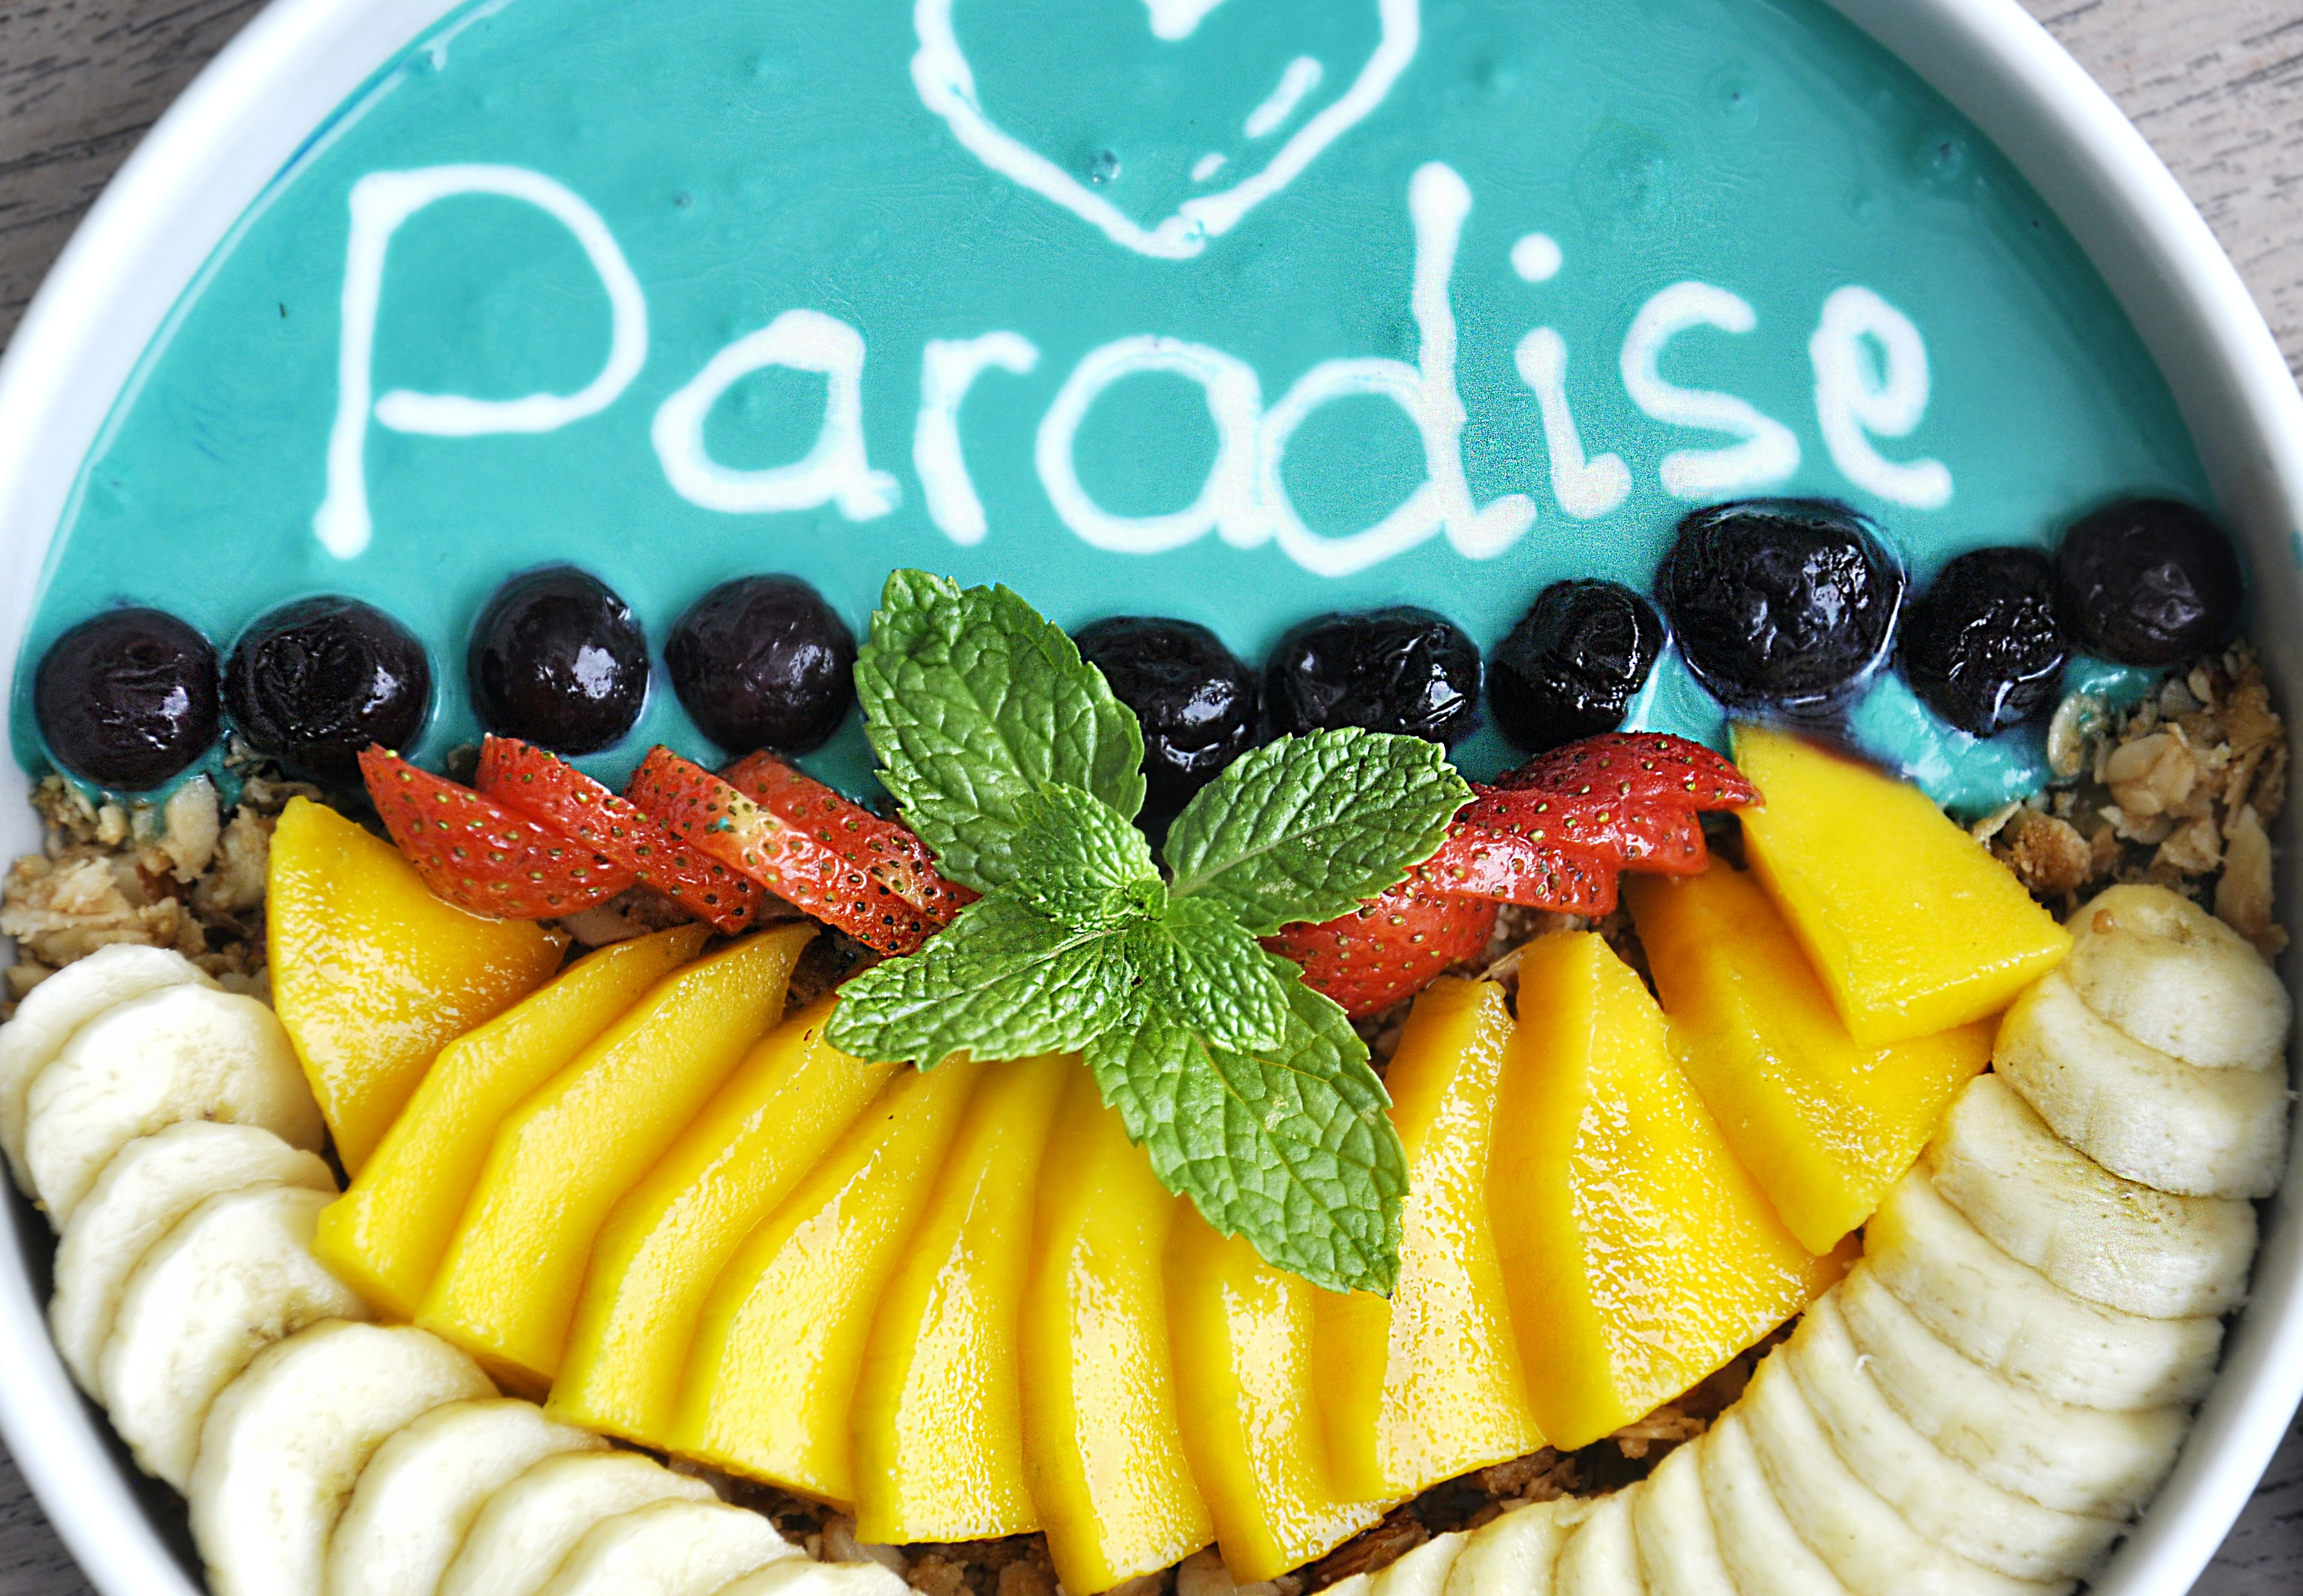 variety of sliced fruits on top of white and teal container